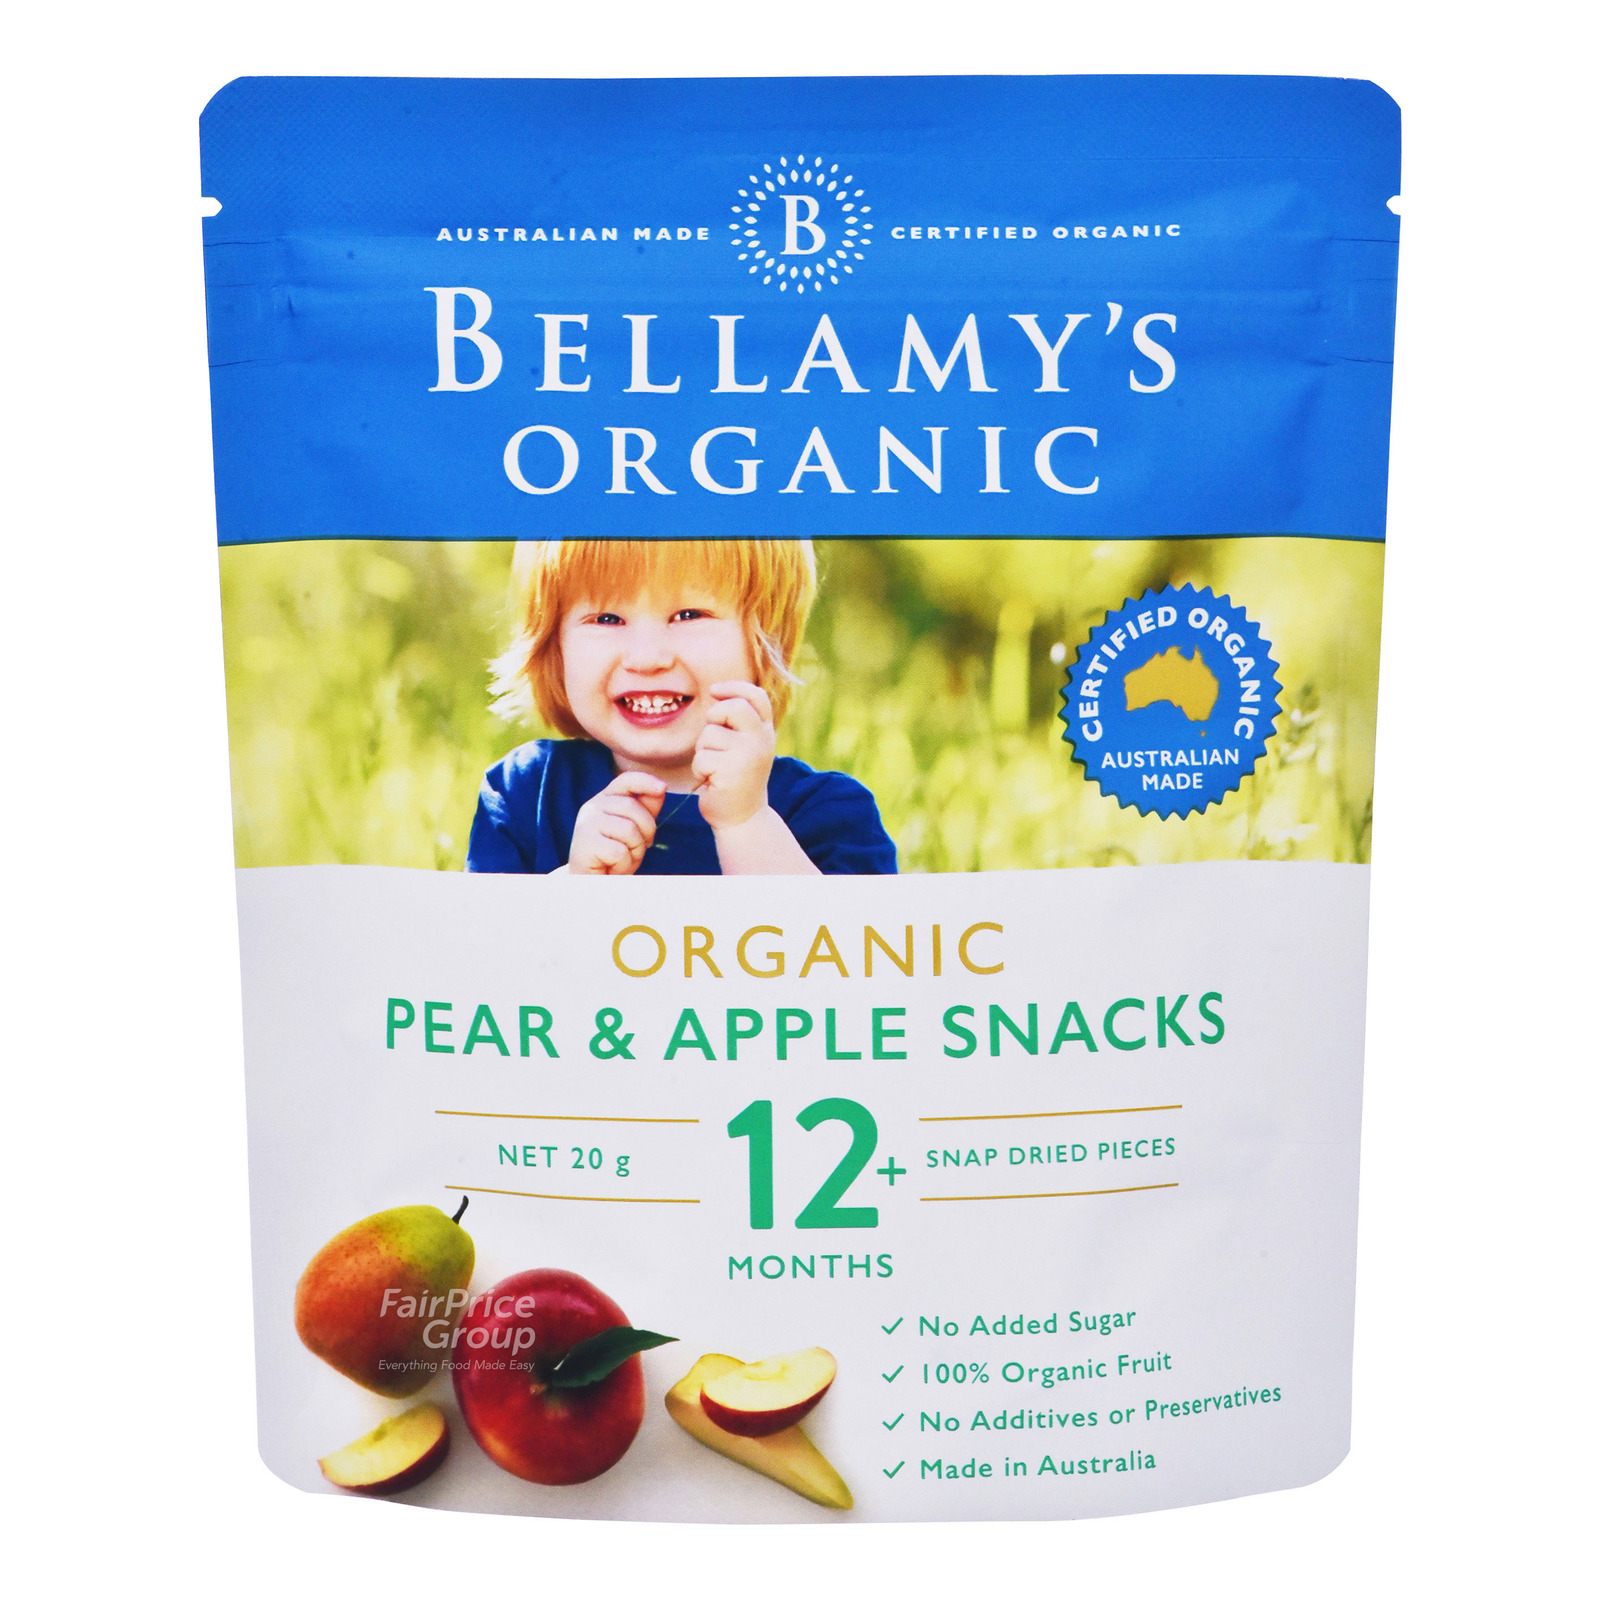 Bellamy's Organic Baby Snack - Pear & Apple